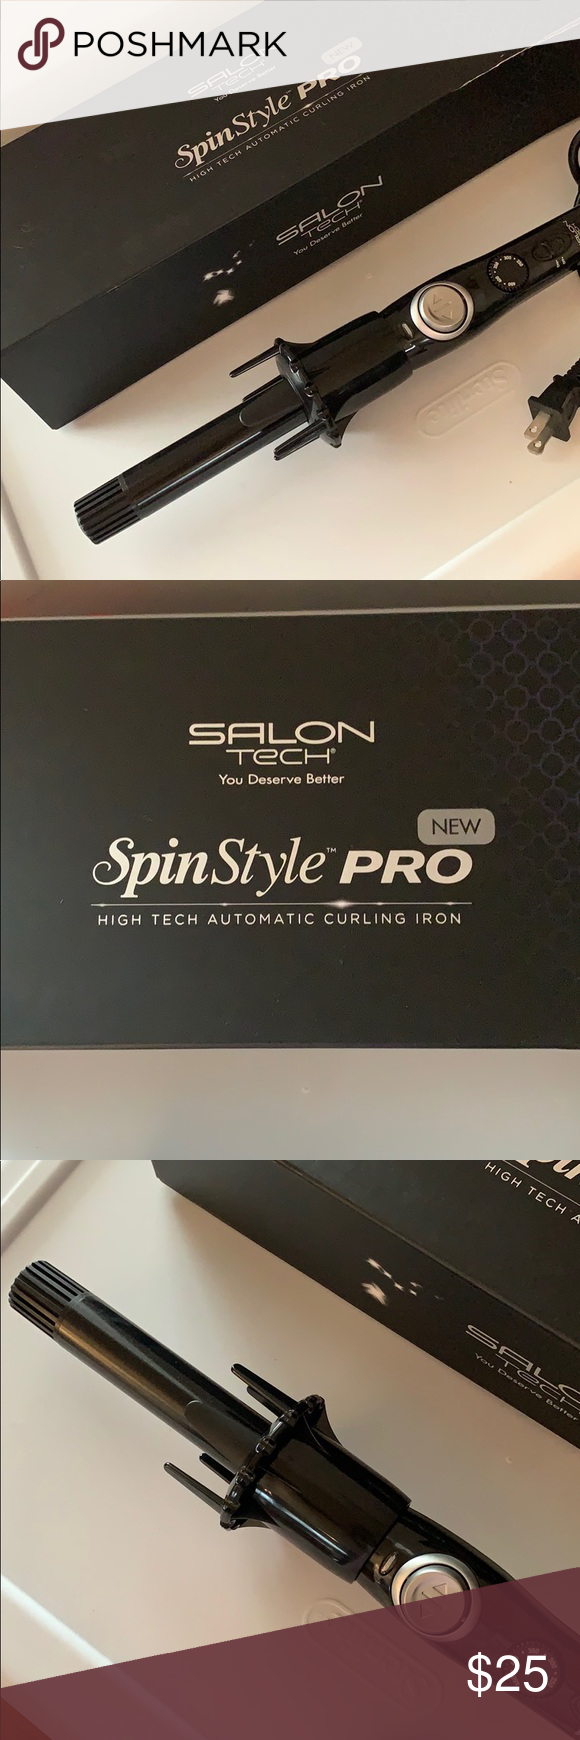 Spin Style Pro : style, Curling, Style, Automatic, Iron,, Curls